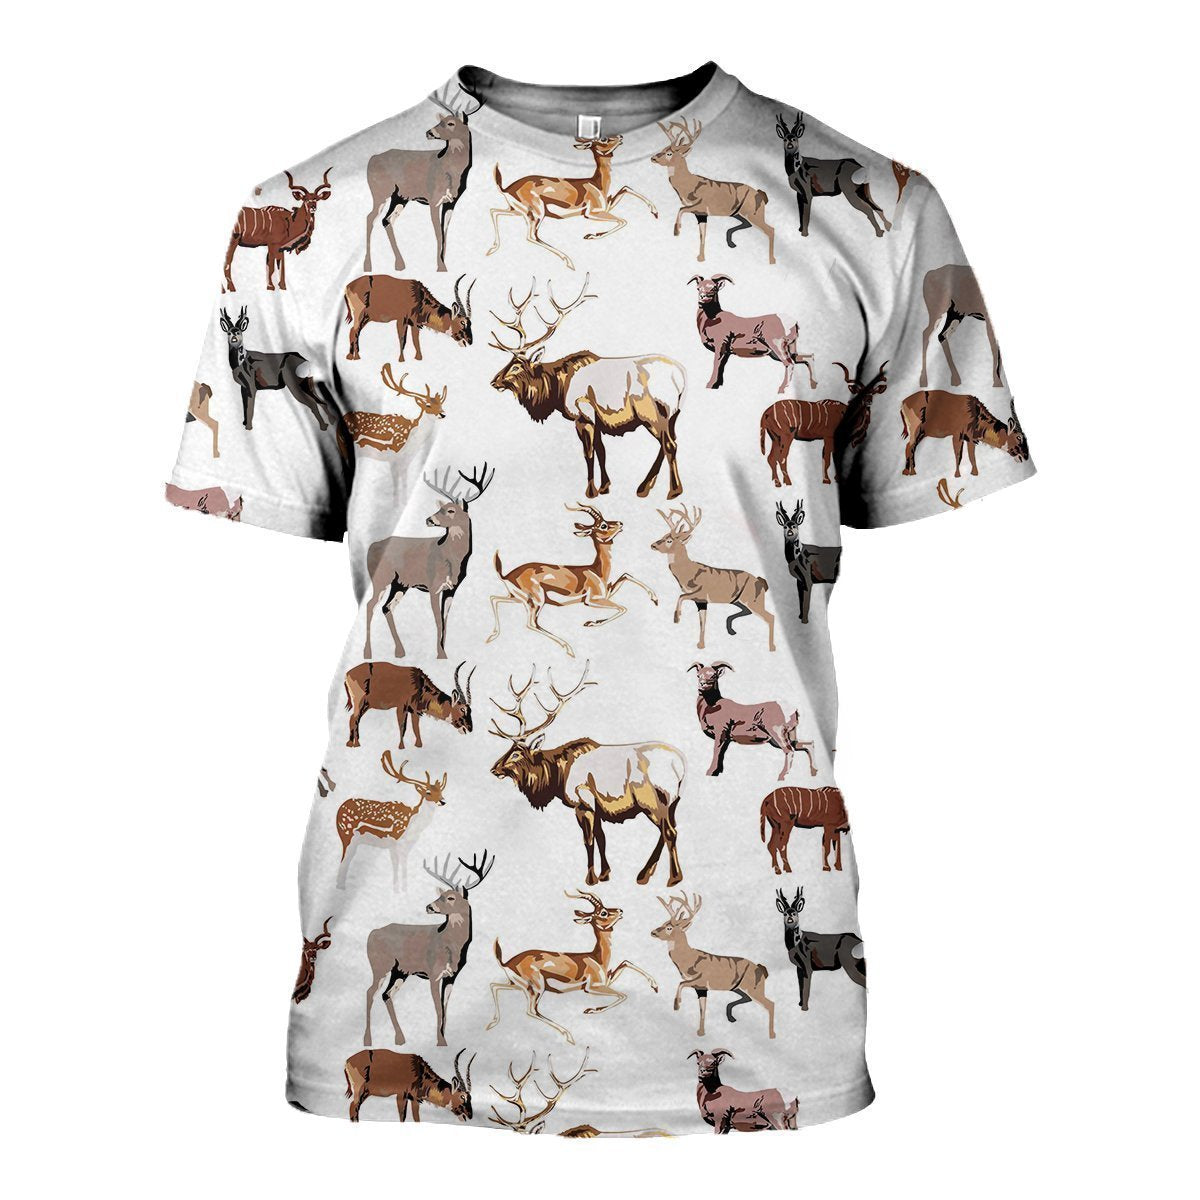 3D All Over Printed Hunting Deer Shirts and Shorts-Apparel-6teenth World-T-Shirt-S-Vibe Cosy™